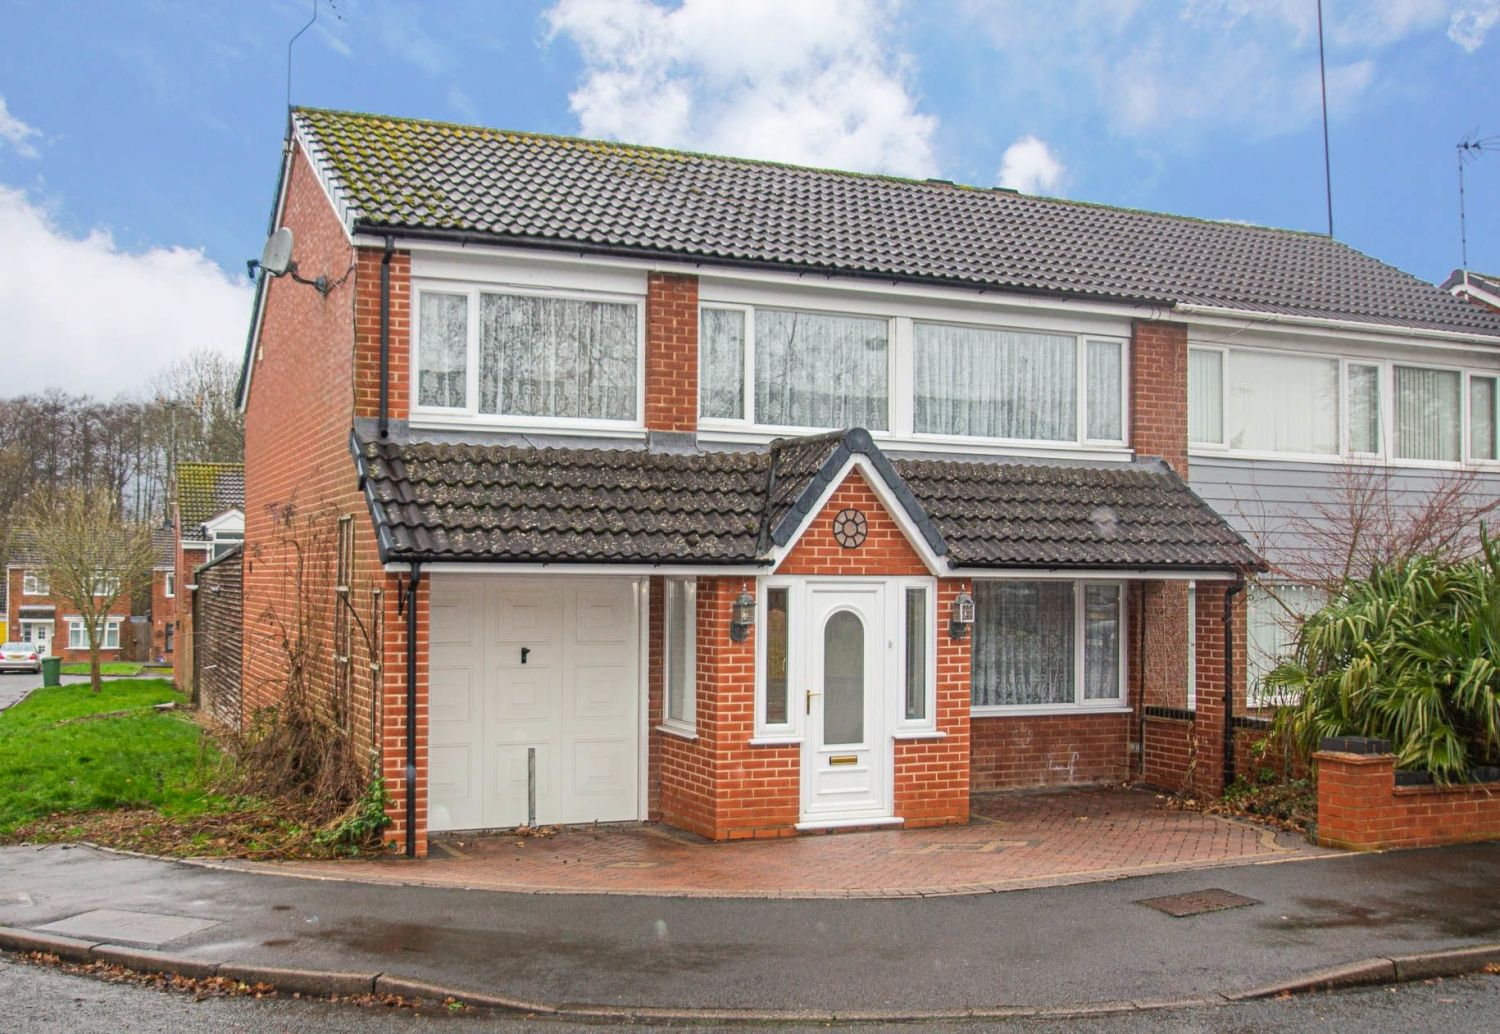 3 bed semi-detached for sale in Cheswick Close, Winyates Green  - Property Image 1